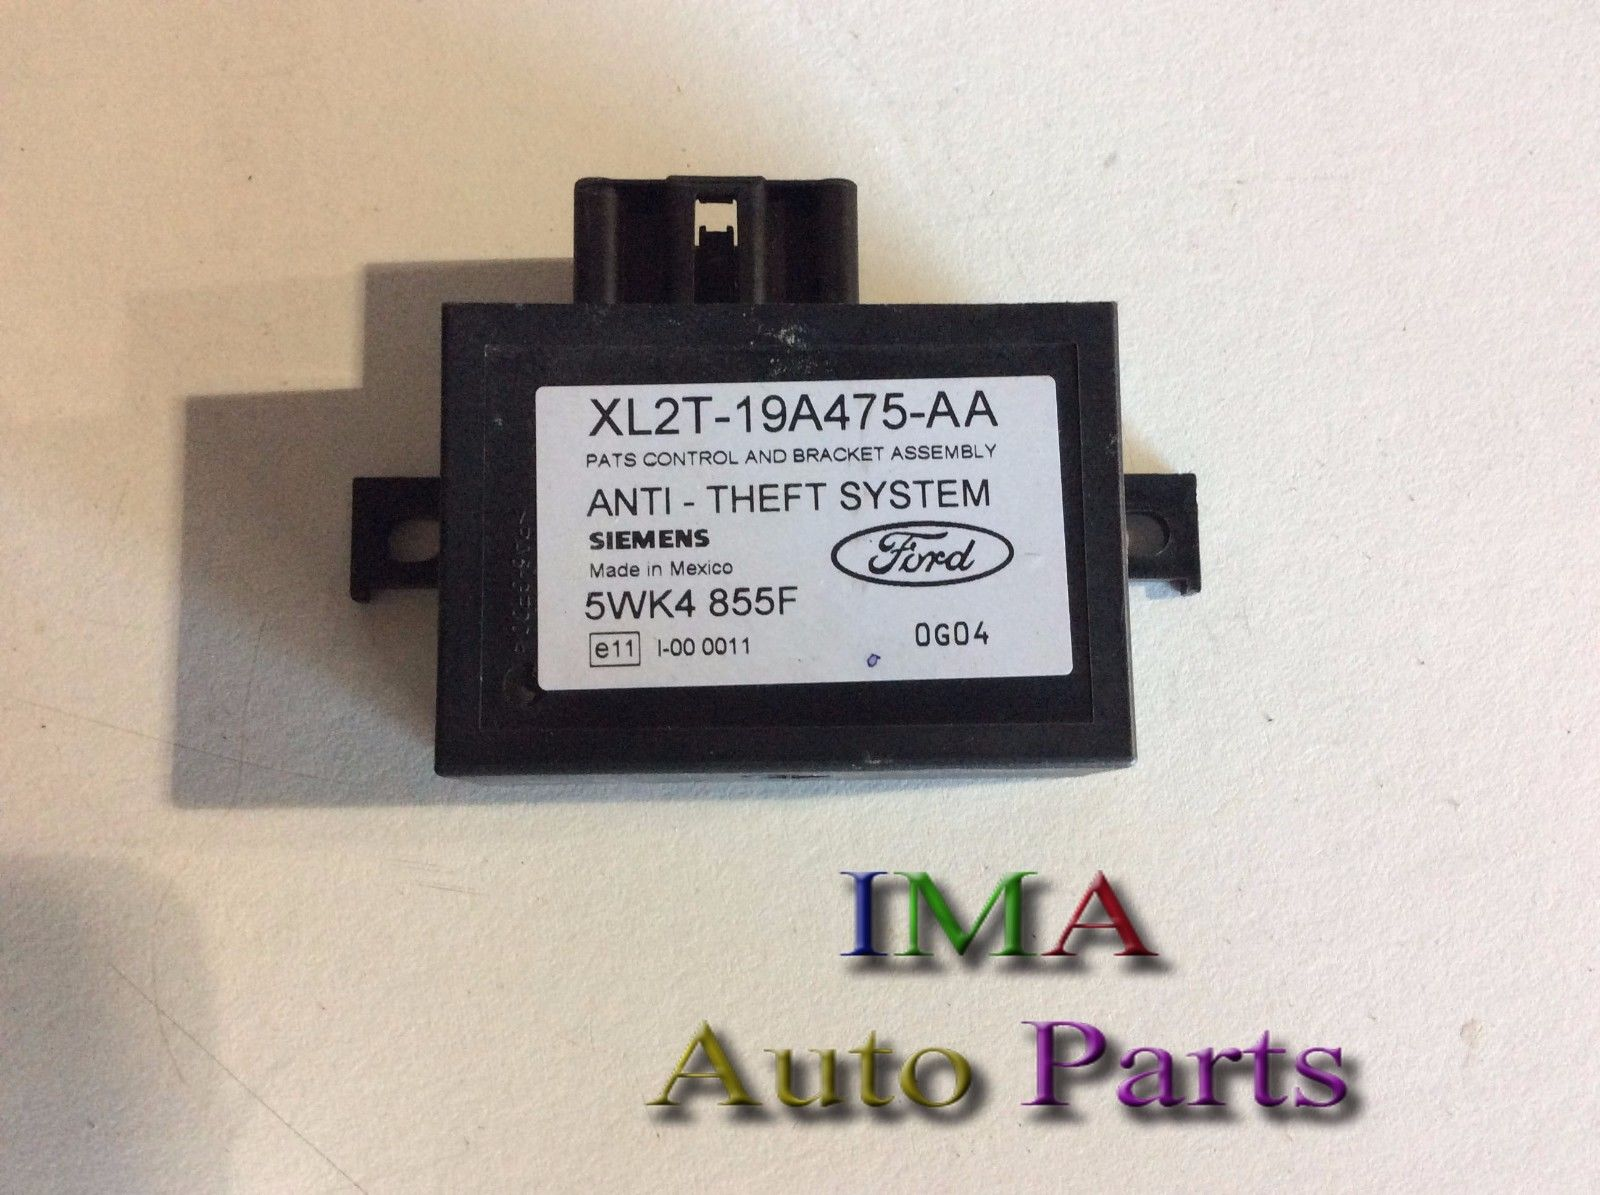 01 <em>MERCURY</em> MOUNTAINEER ANTI THEFT LOCKING SYSTEM CONTROL UNIT OEM XL2T-19A475-AA